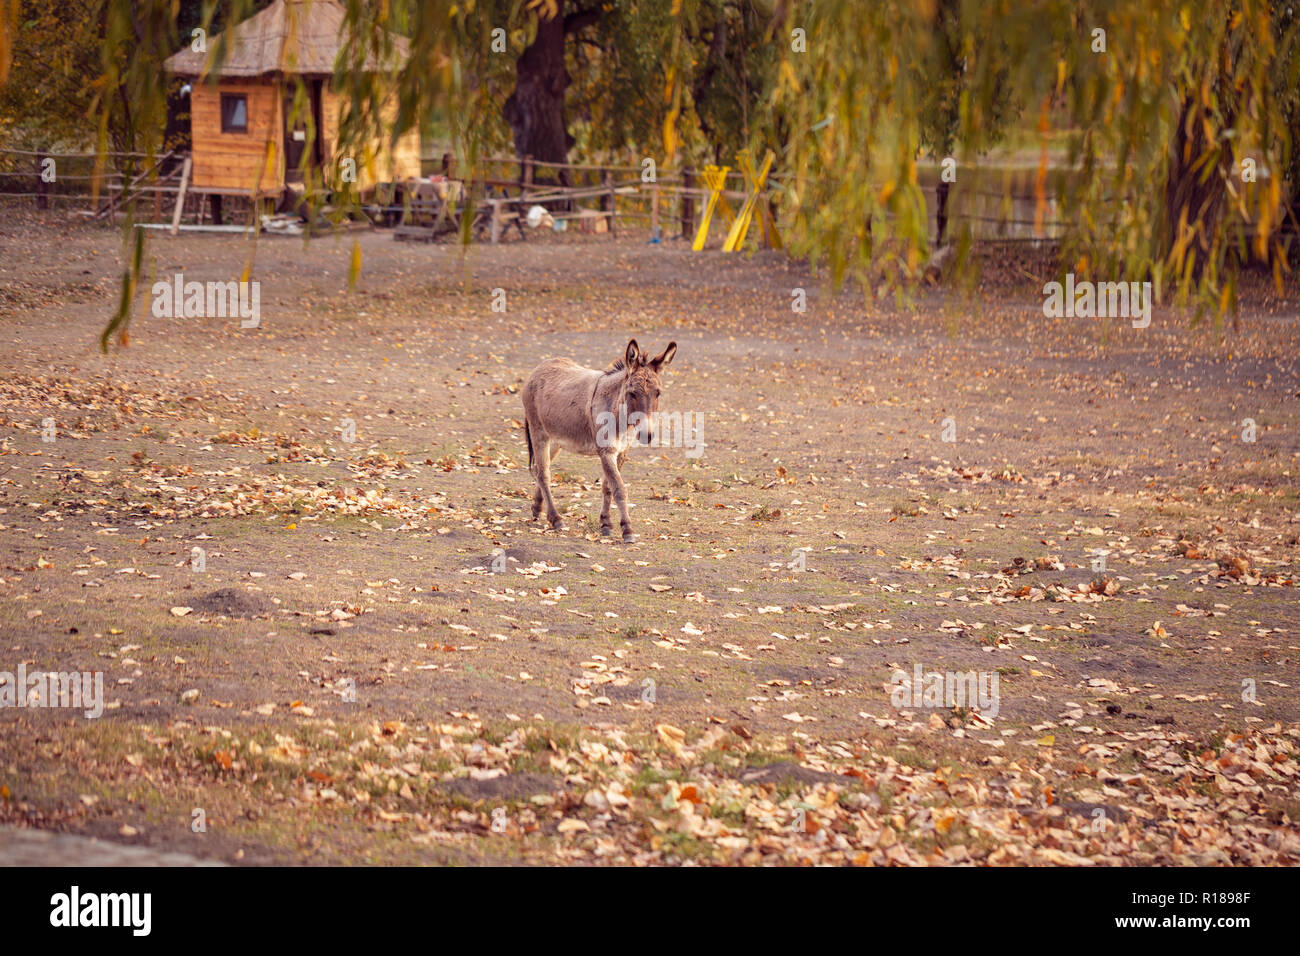 brown young donkey on a farm outdoors - pet animal Stock Photo